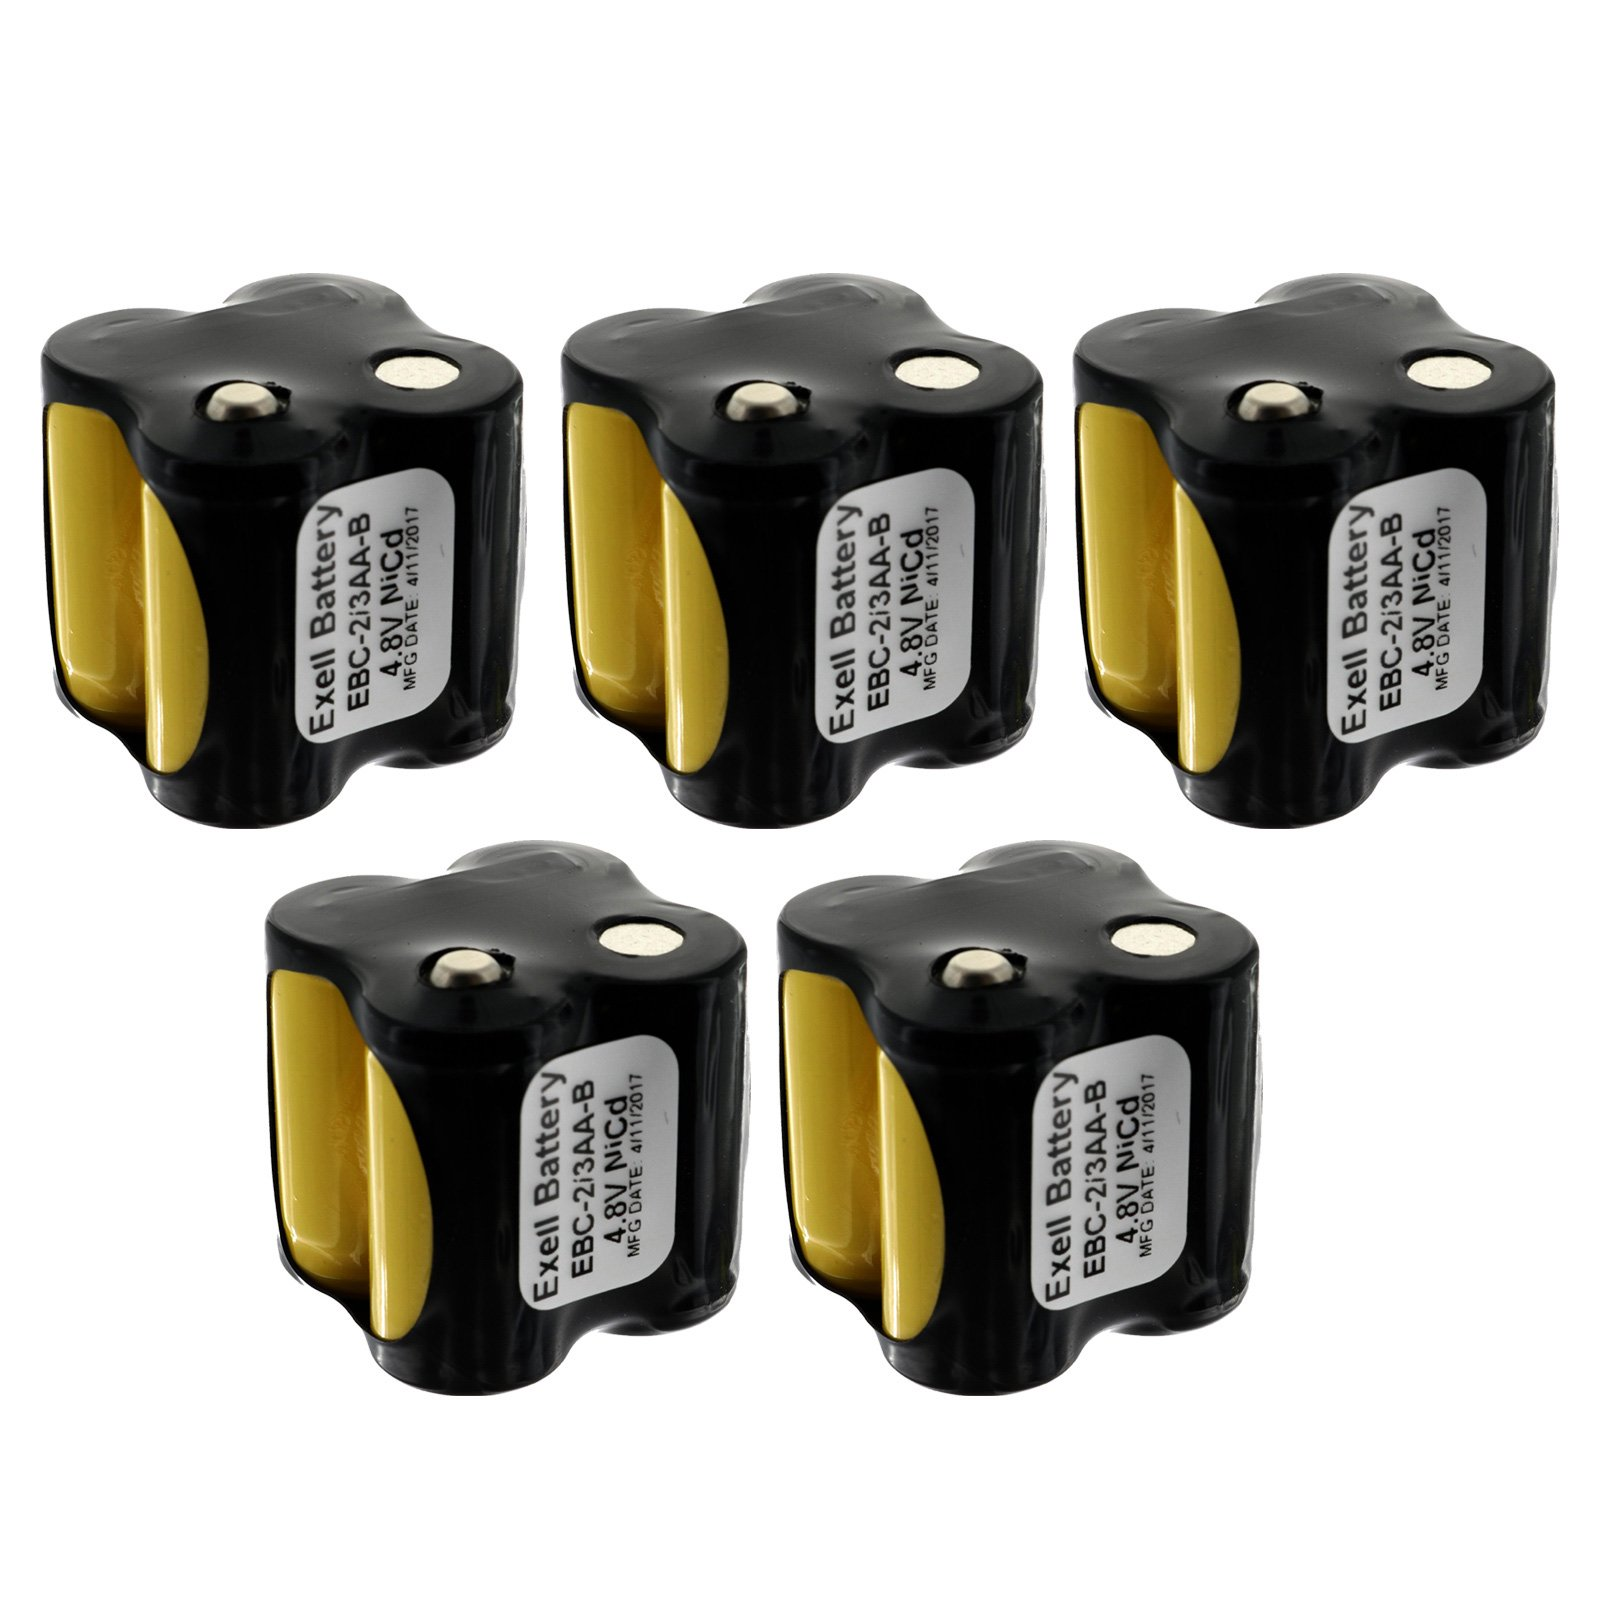 5x Exell Custom 4.8V 400 mAh 4x2/3AA Square Battery Pack with Button Top